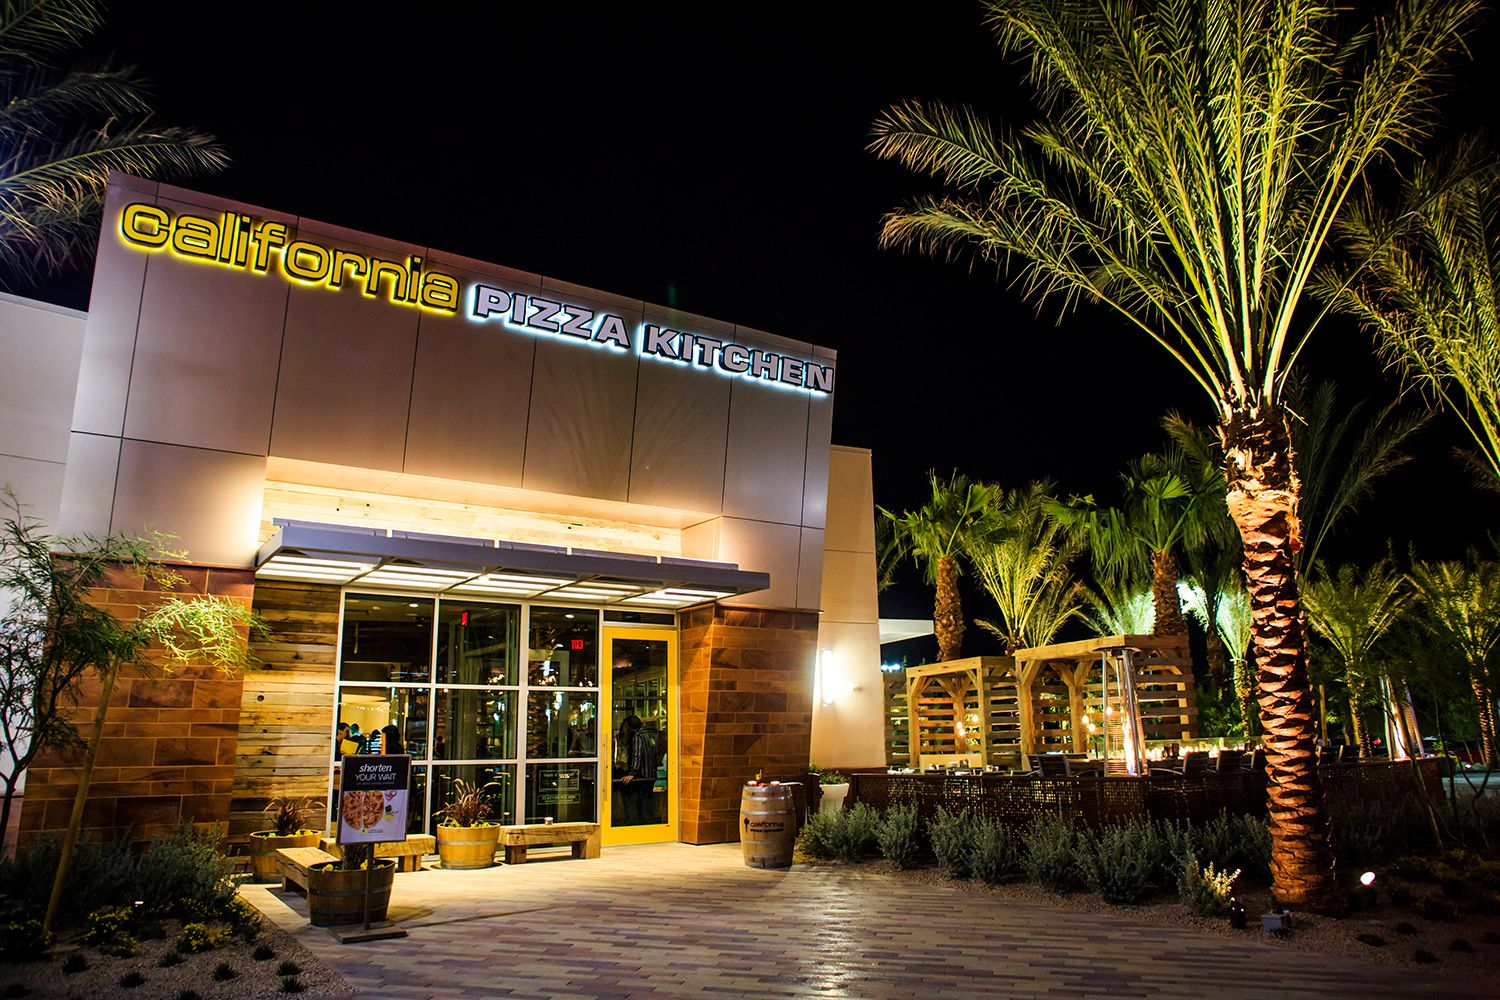 California Pizza Kitchen Files for Voluntary Chapter 11 Restructuring